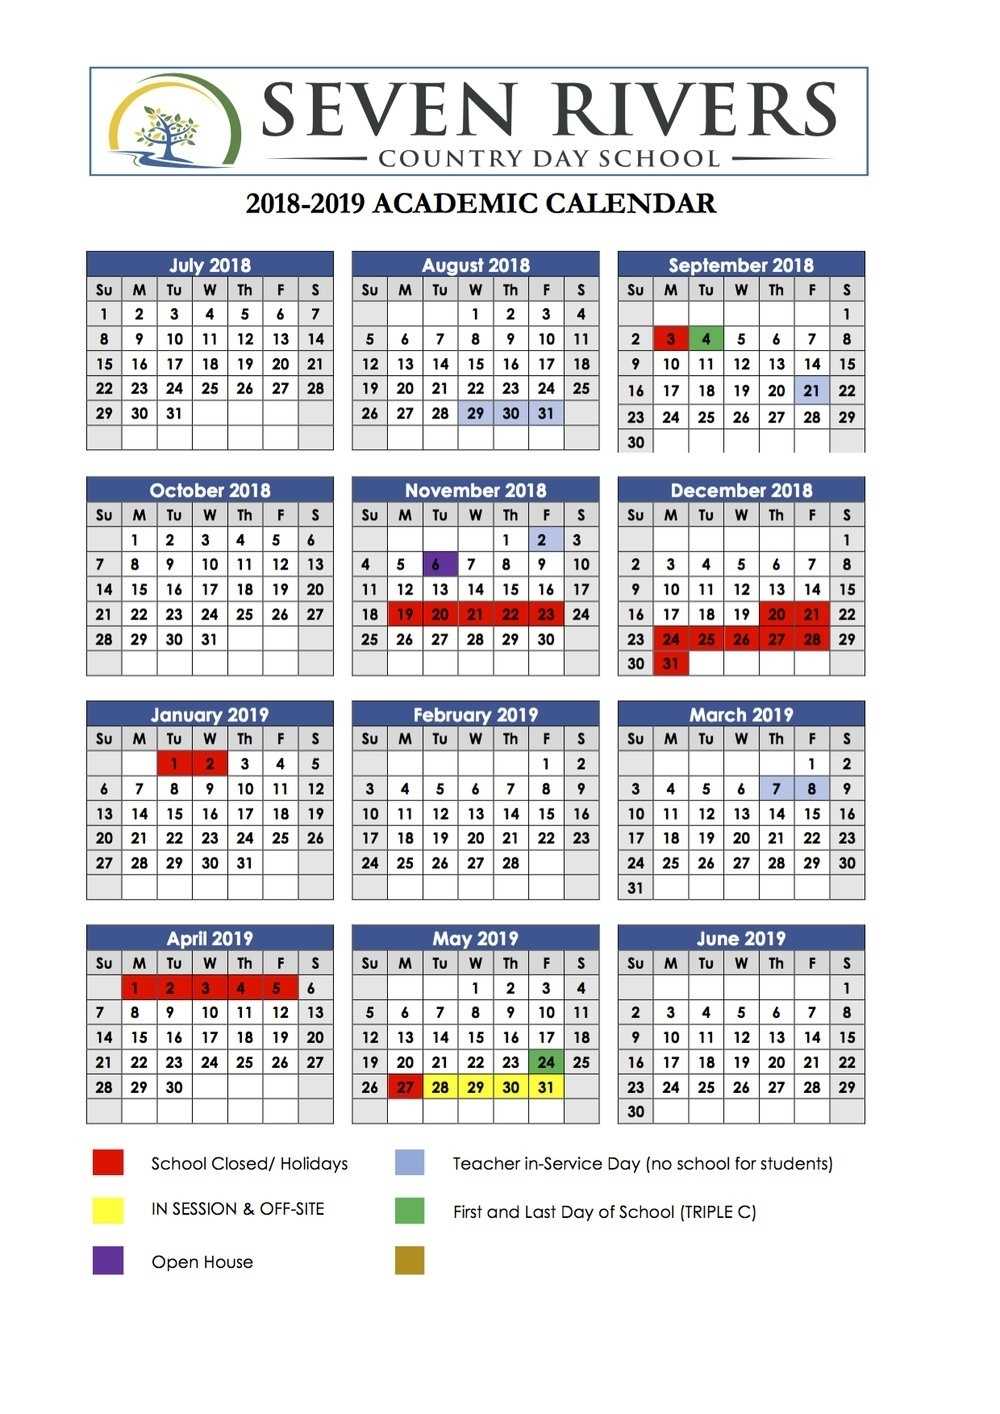 Dashing E Rivers School Calendar • Printable Blank Calendar Template_E Rivers School Calendar